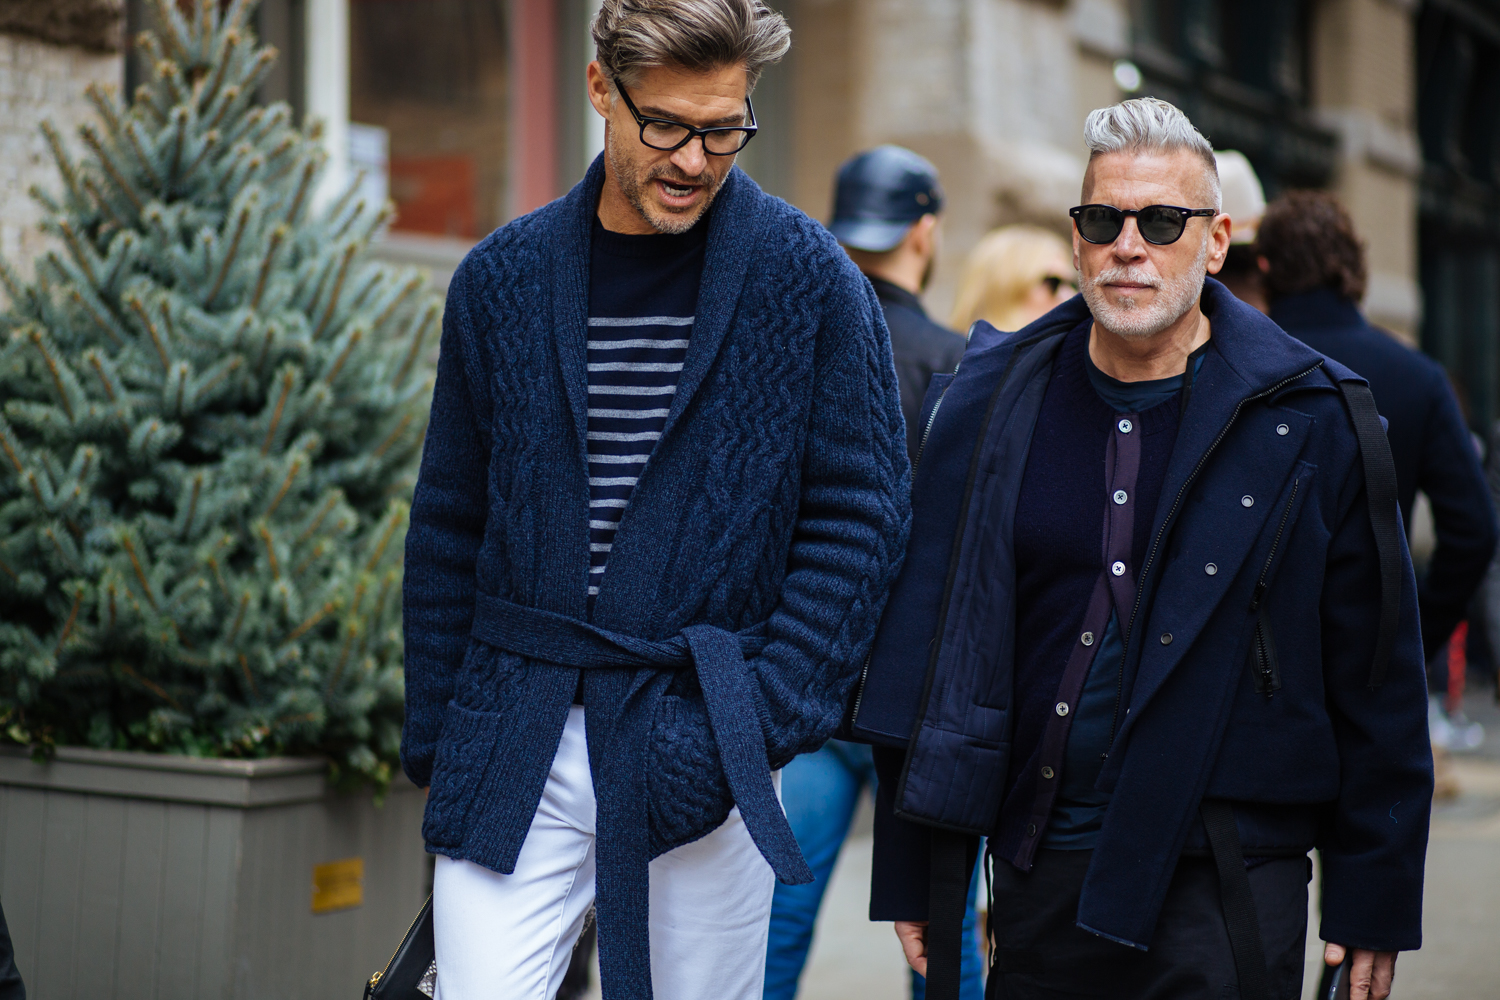 Cardigan by Eidos, Striped Sweater by Craft Atlantic, Jeans by J. Brand, Bag by Mitchell Primrose, Glasses by Tom Ford